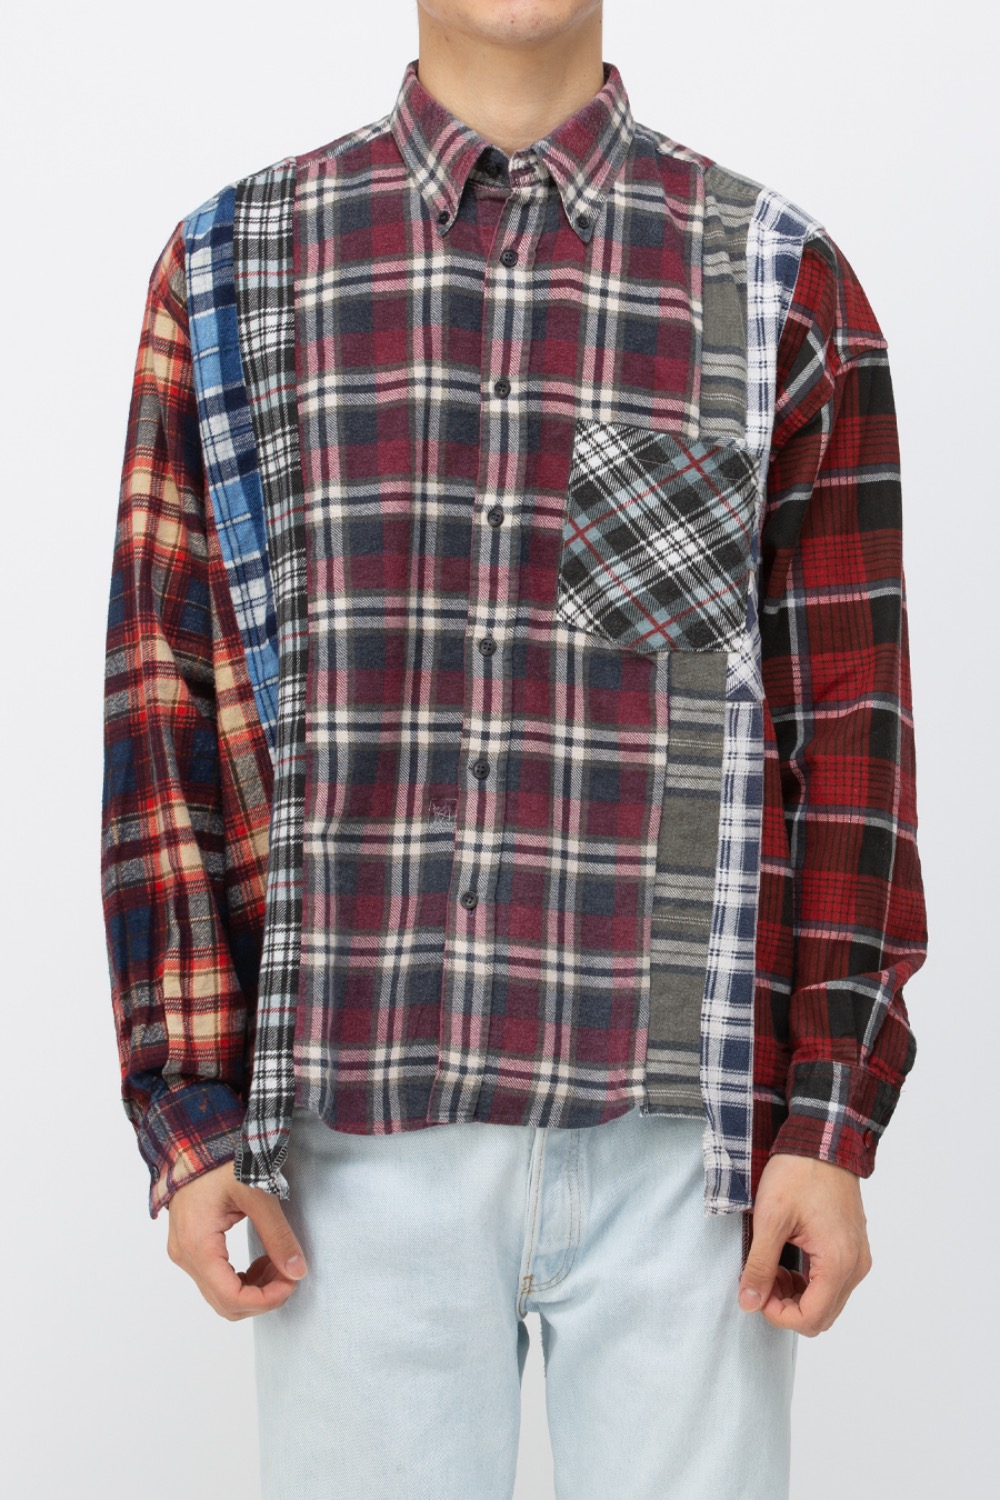 (WIDE-10)REBUILD BY NEEDLES FLANNEL SHIRT - 7CUTS WIDE SHIRT